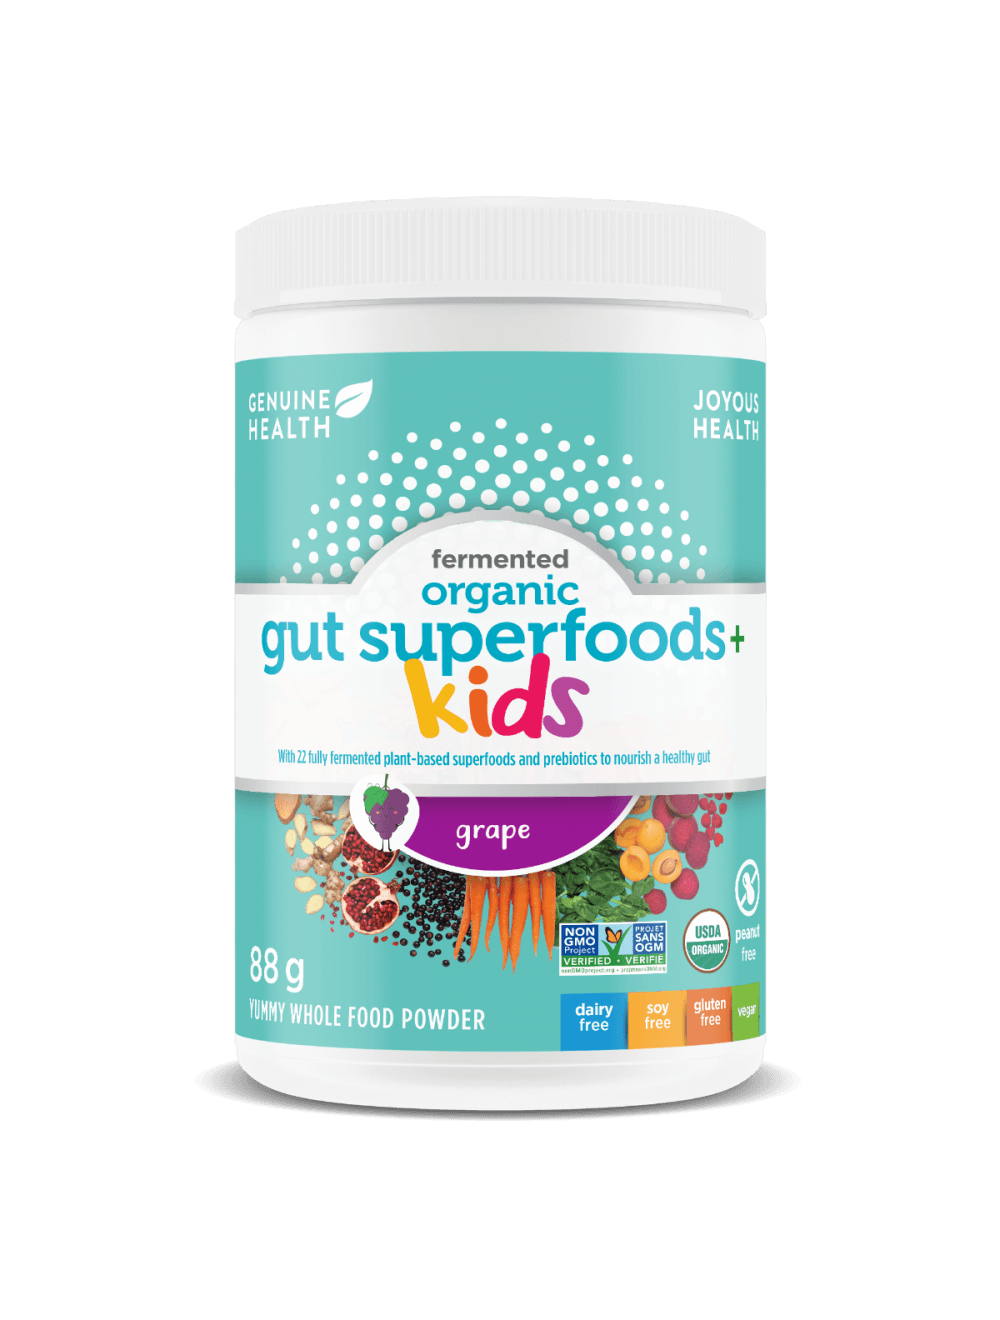 Supplements - Genuine Health - Kids Fermented Gut Superfoods, 88g